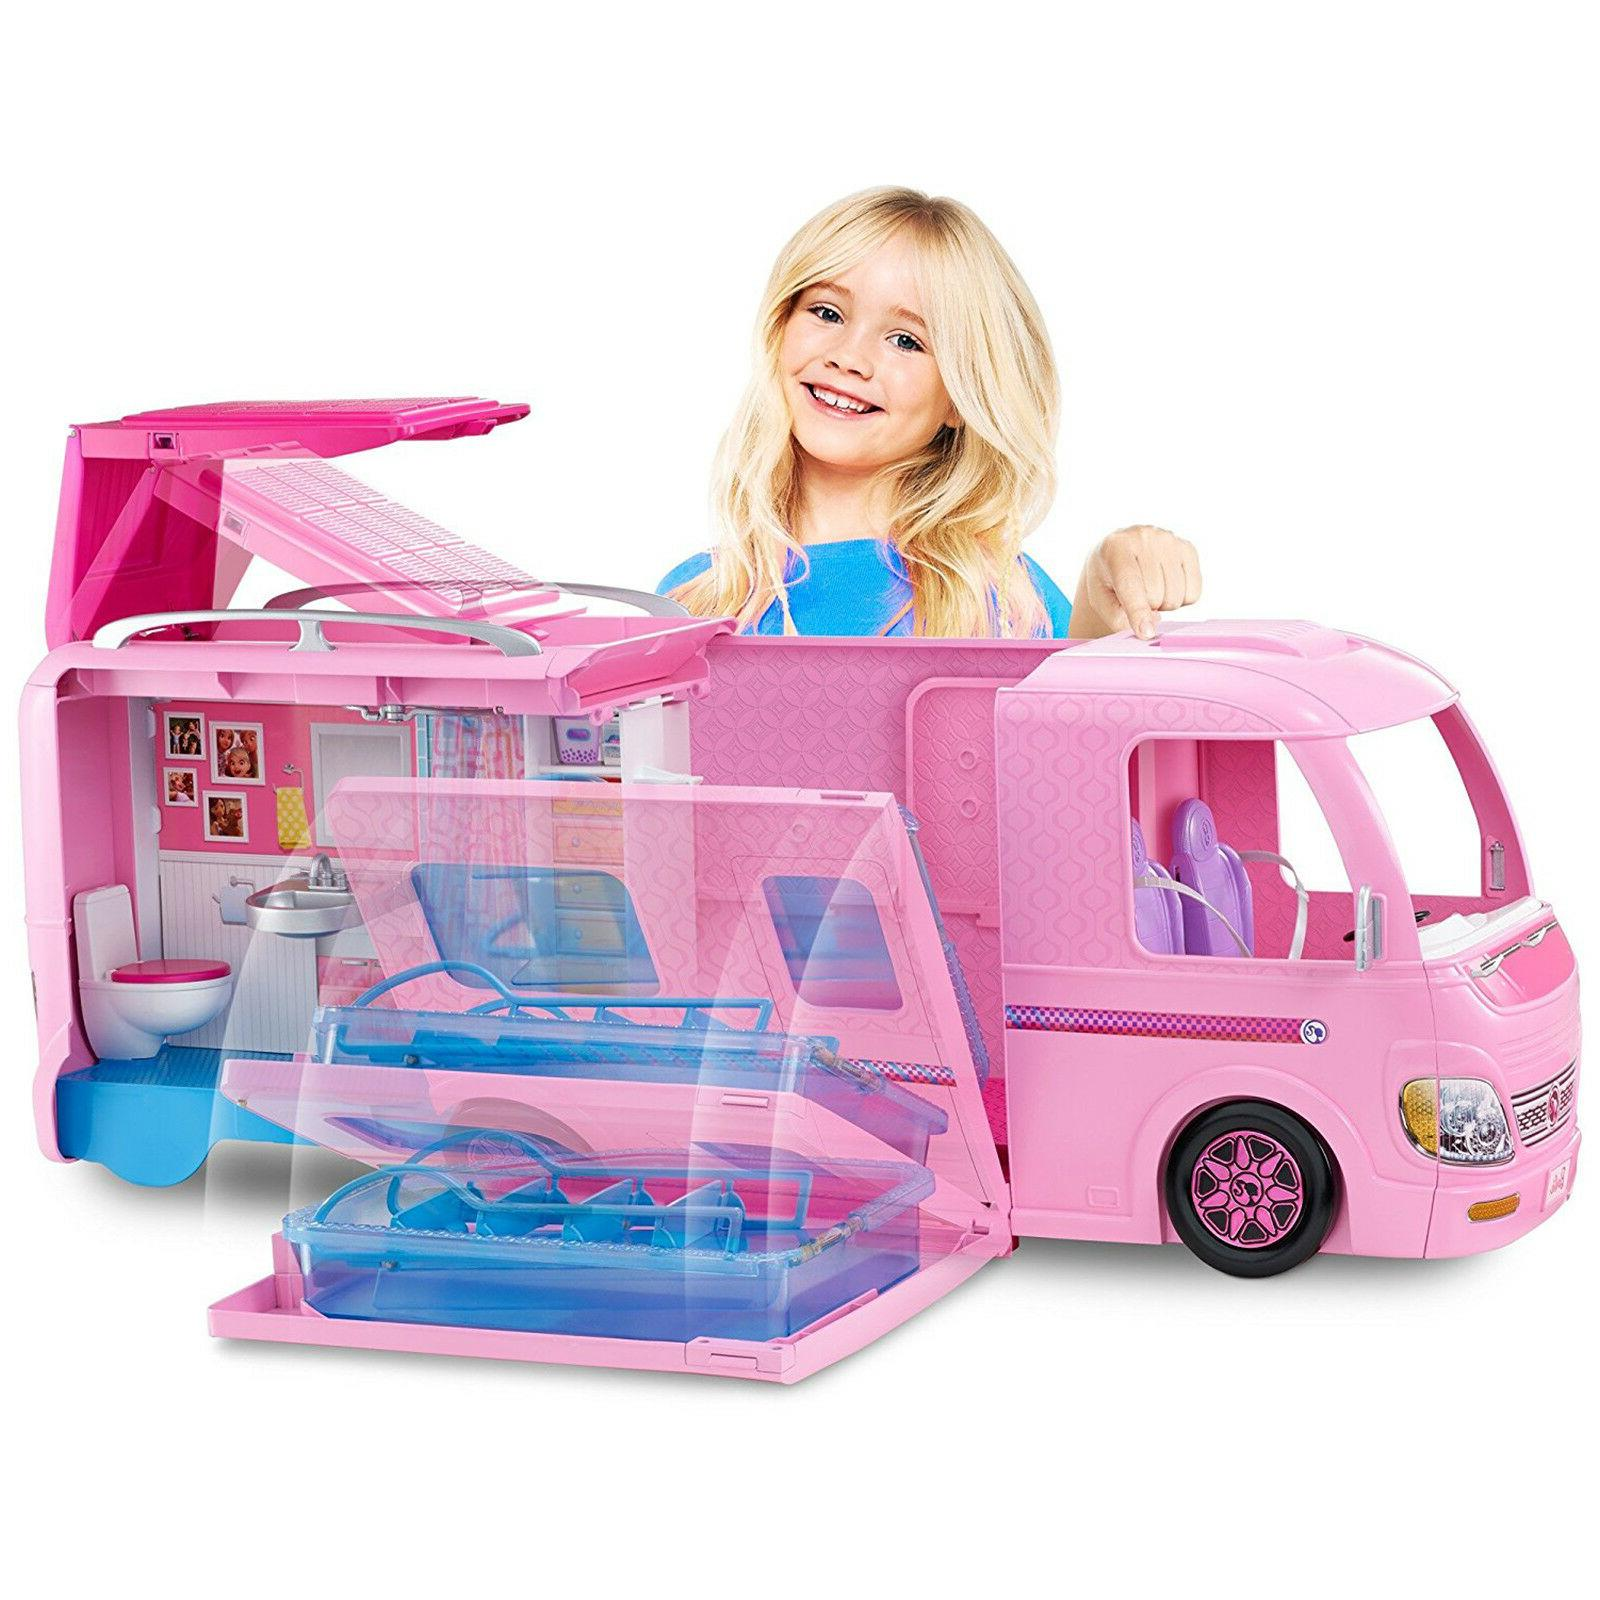 Barbie House Vehicle Furniture Doll Up